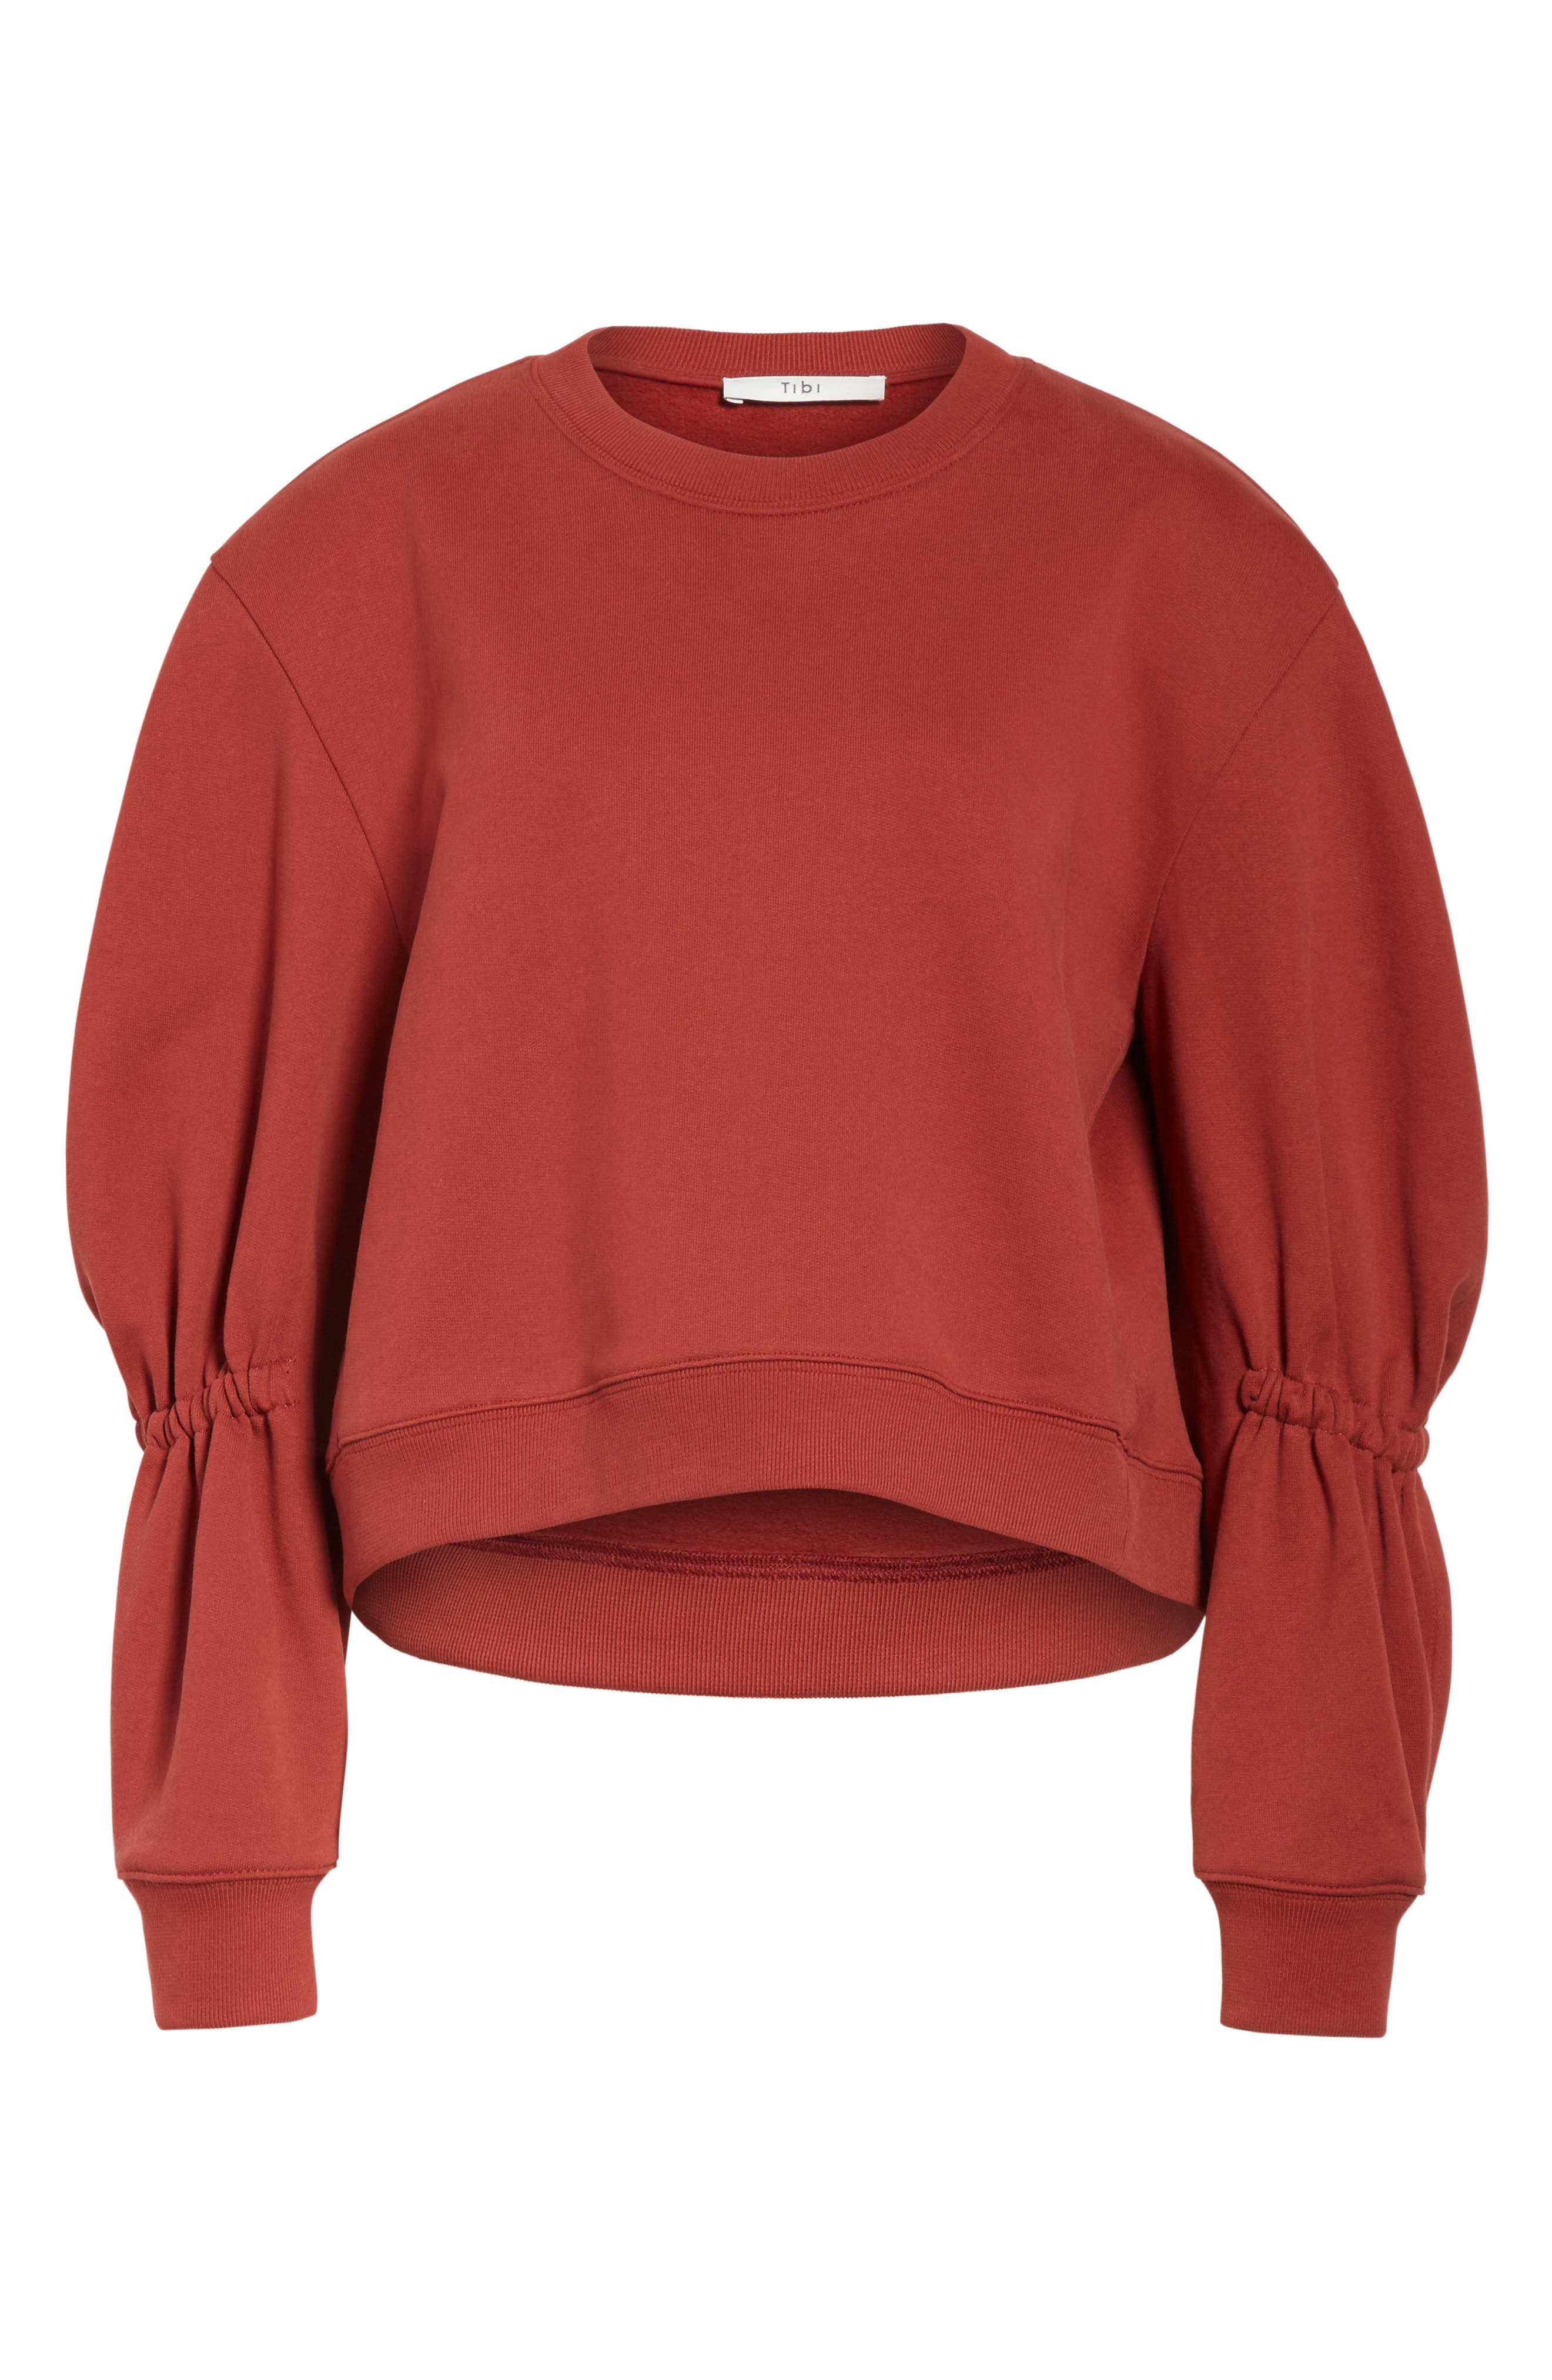 Sculpted Sleeve Sweatshirt,                             Alternate thumbnail 6, color,                             606